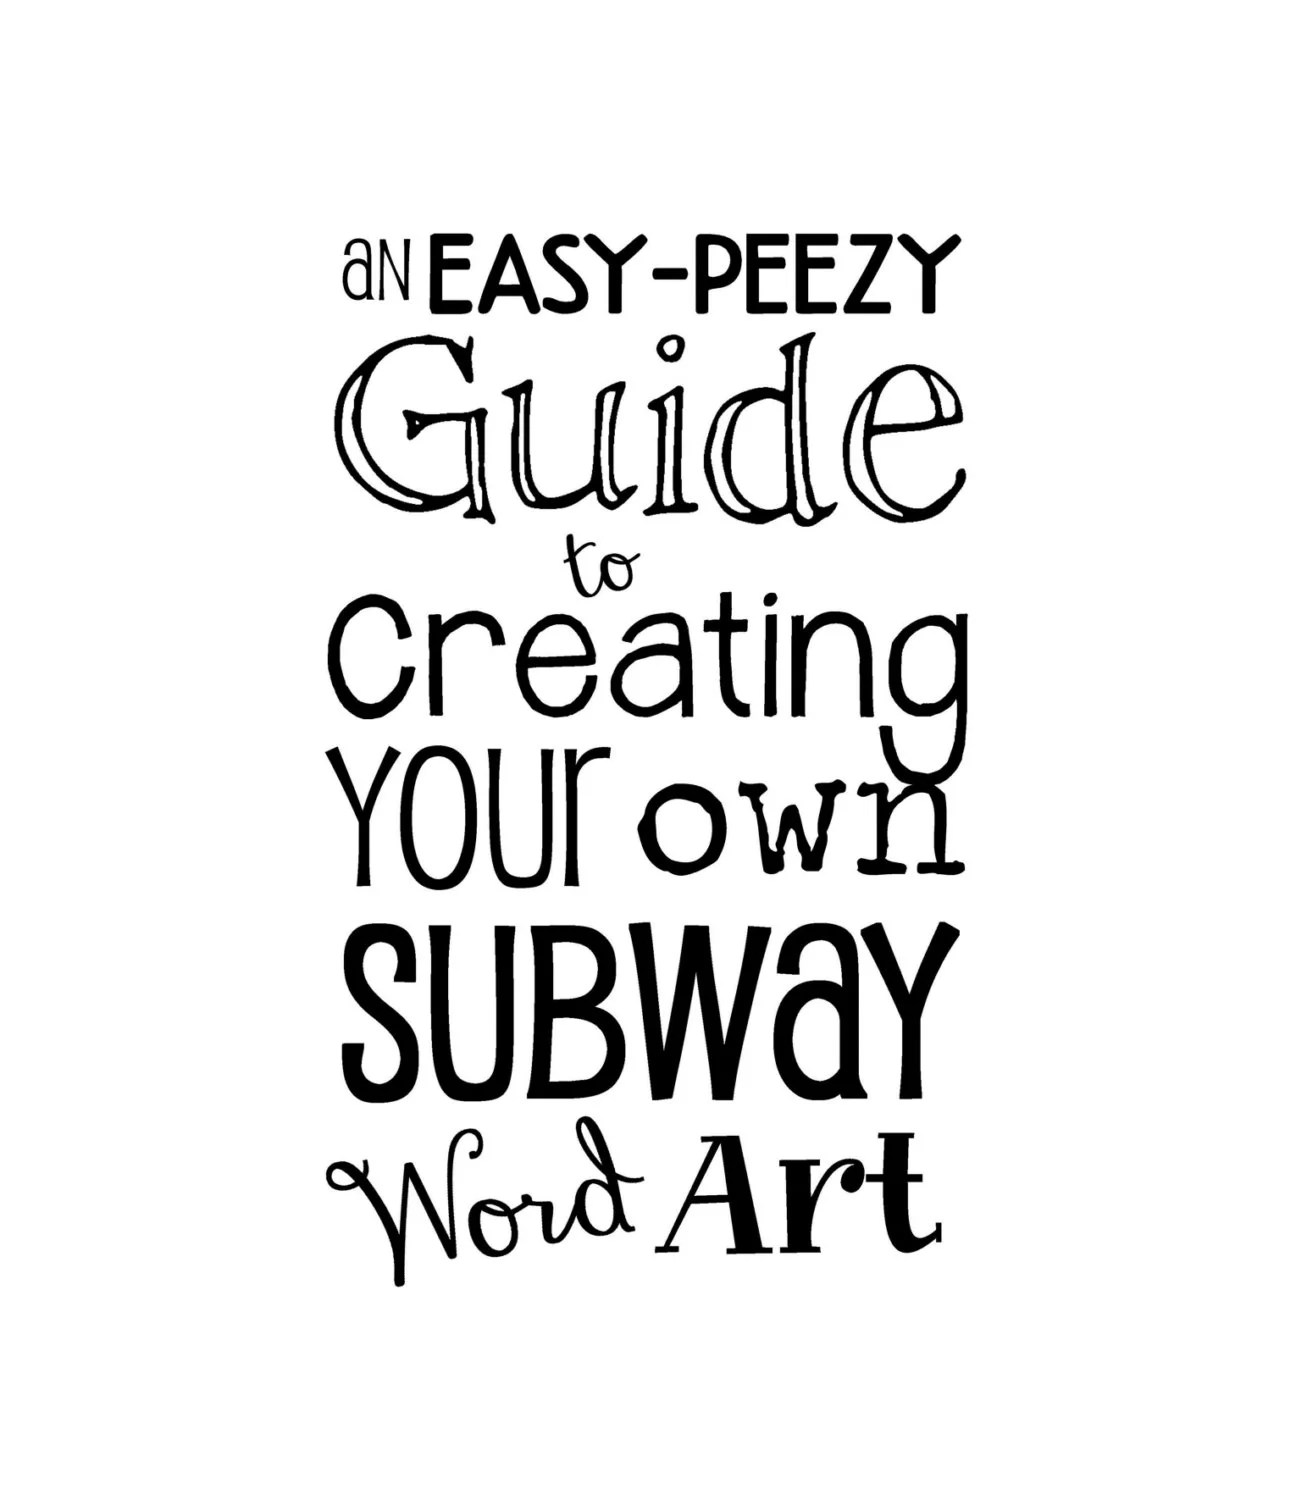 Items similar to An Easy-Peezy Guide to Creating Your Own